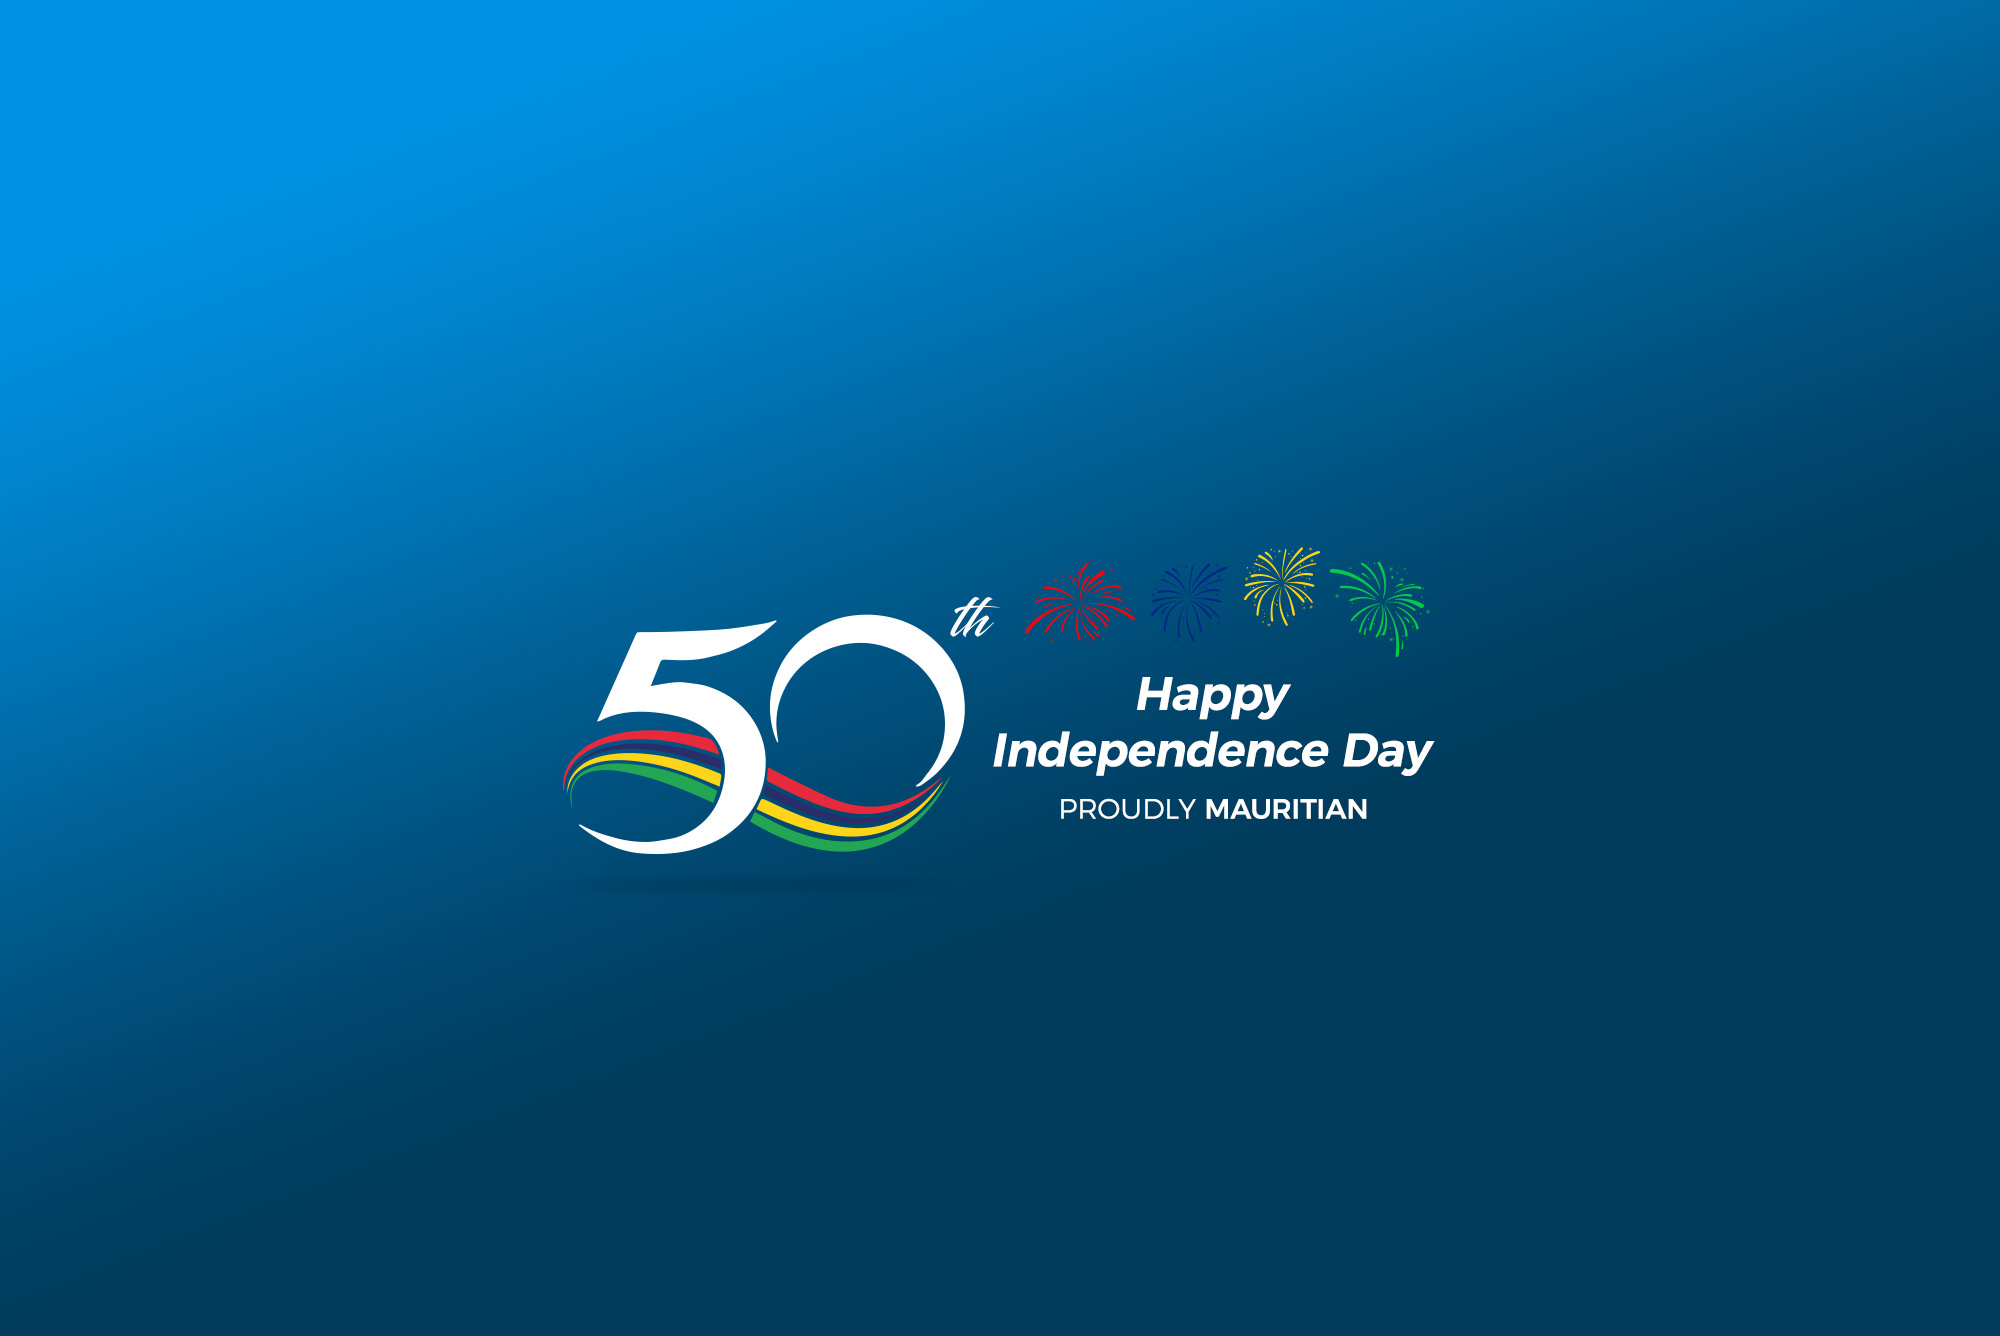 mauritius 50 years independence